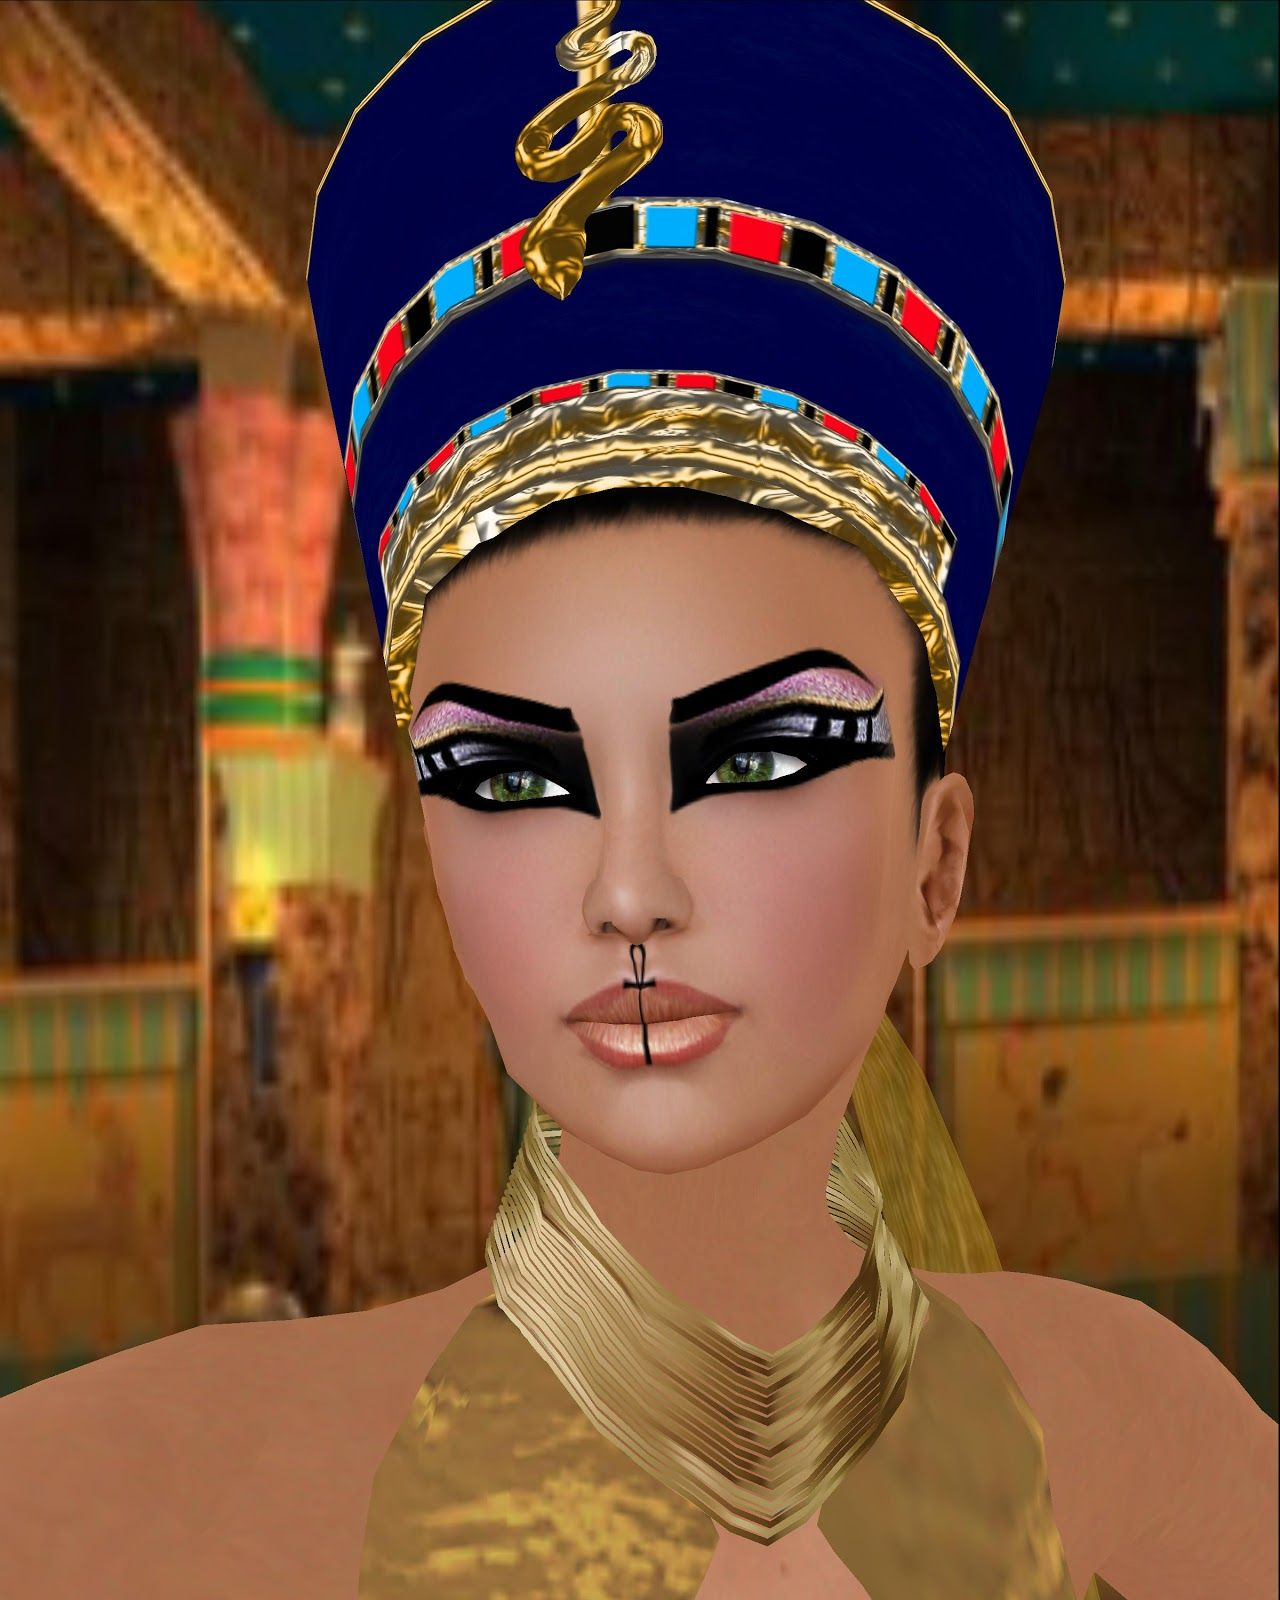 Egyptian Makeup Designs Pictures | Shoot Ideas in 2019 ...